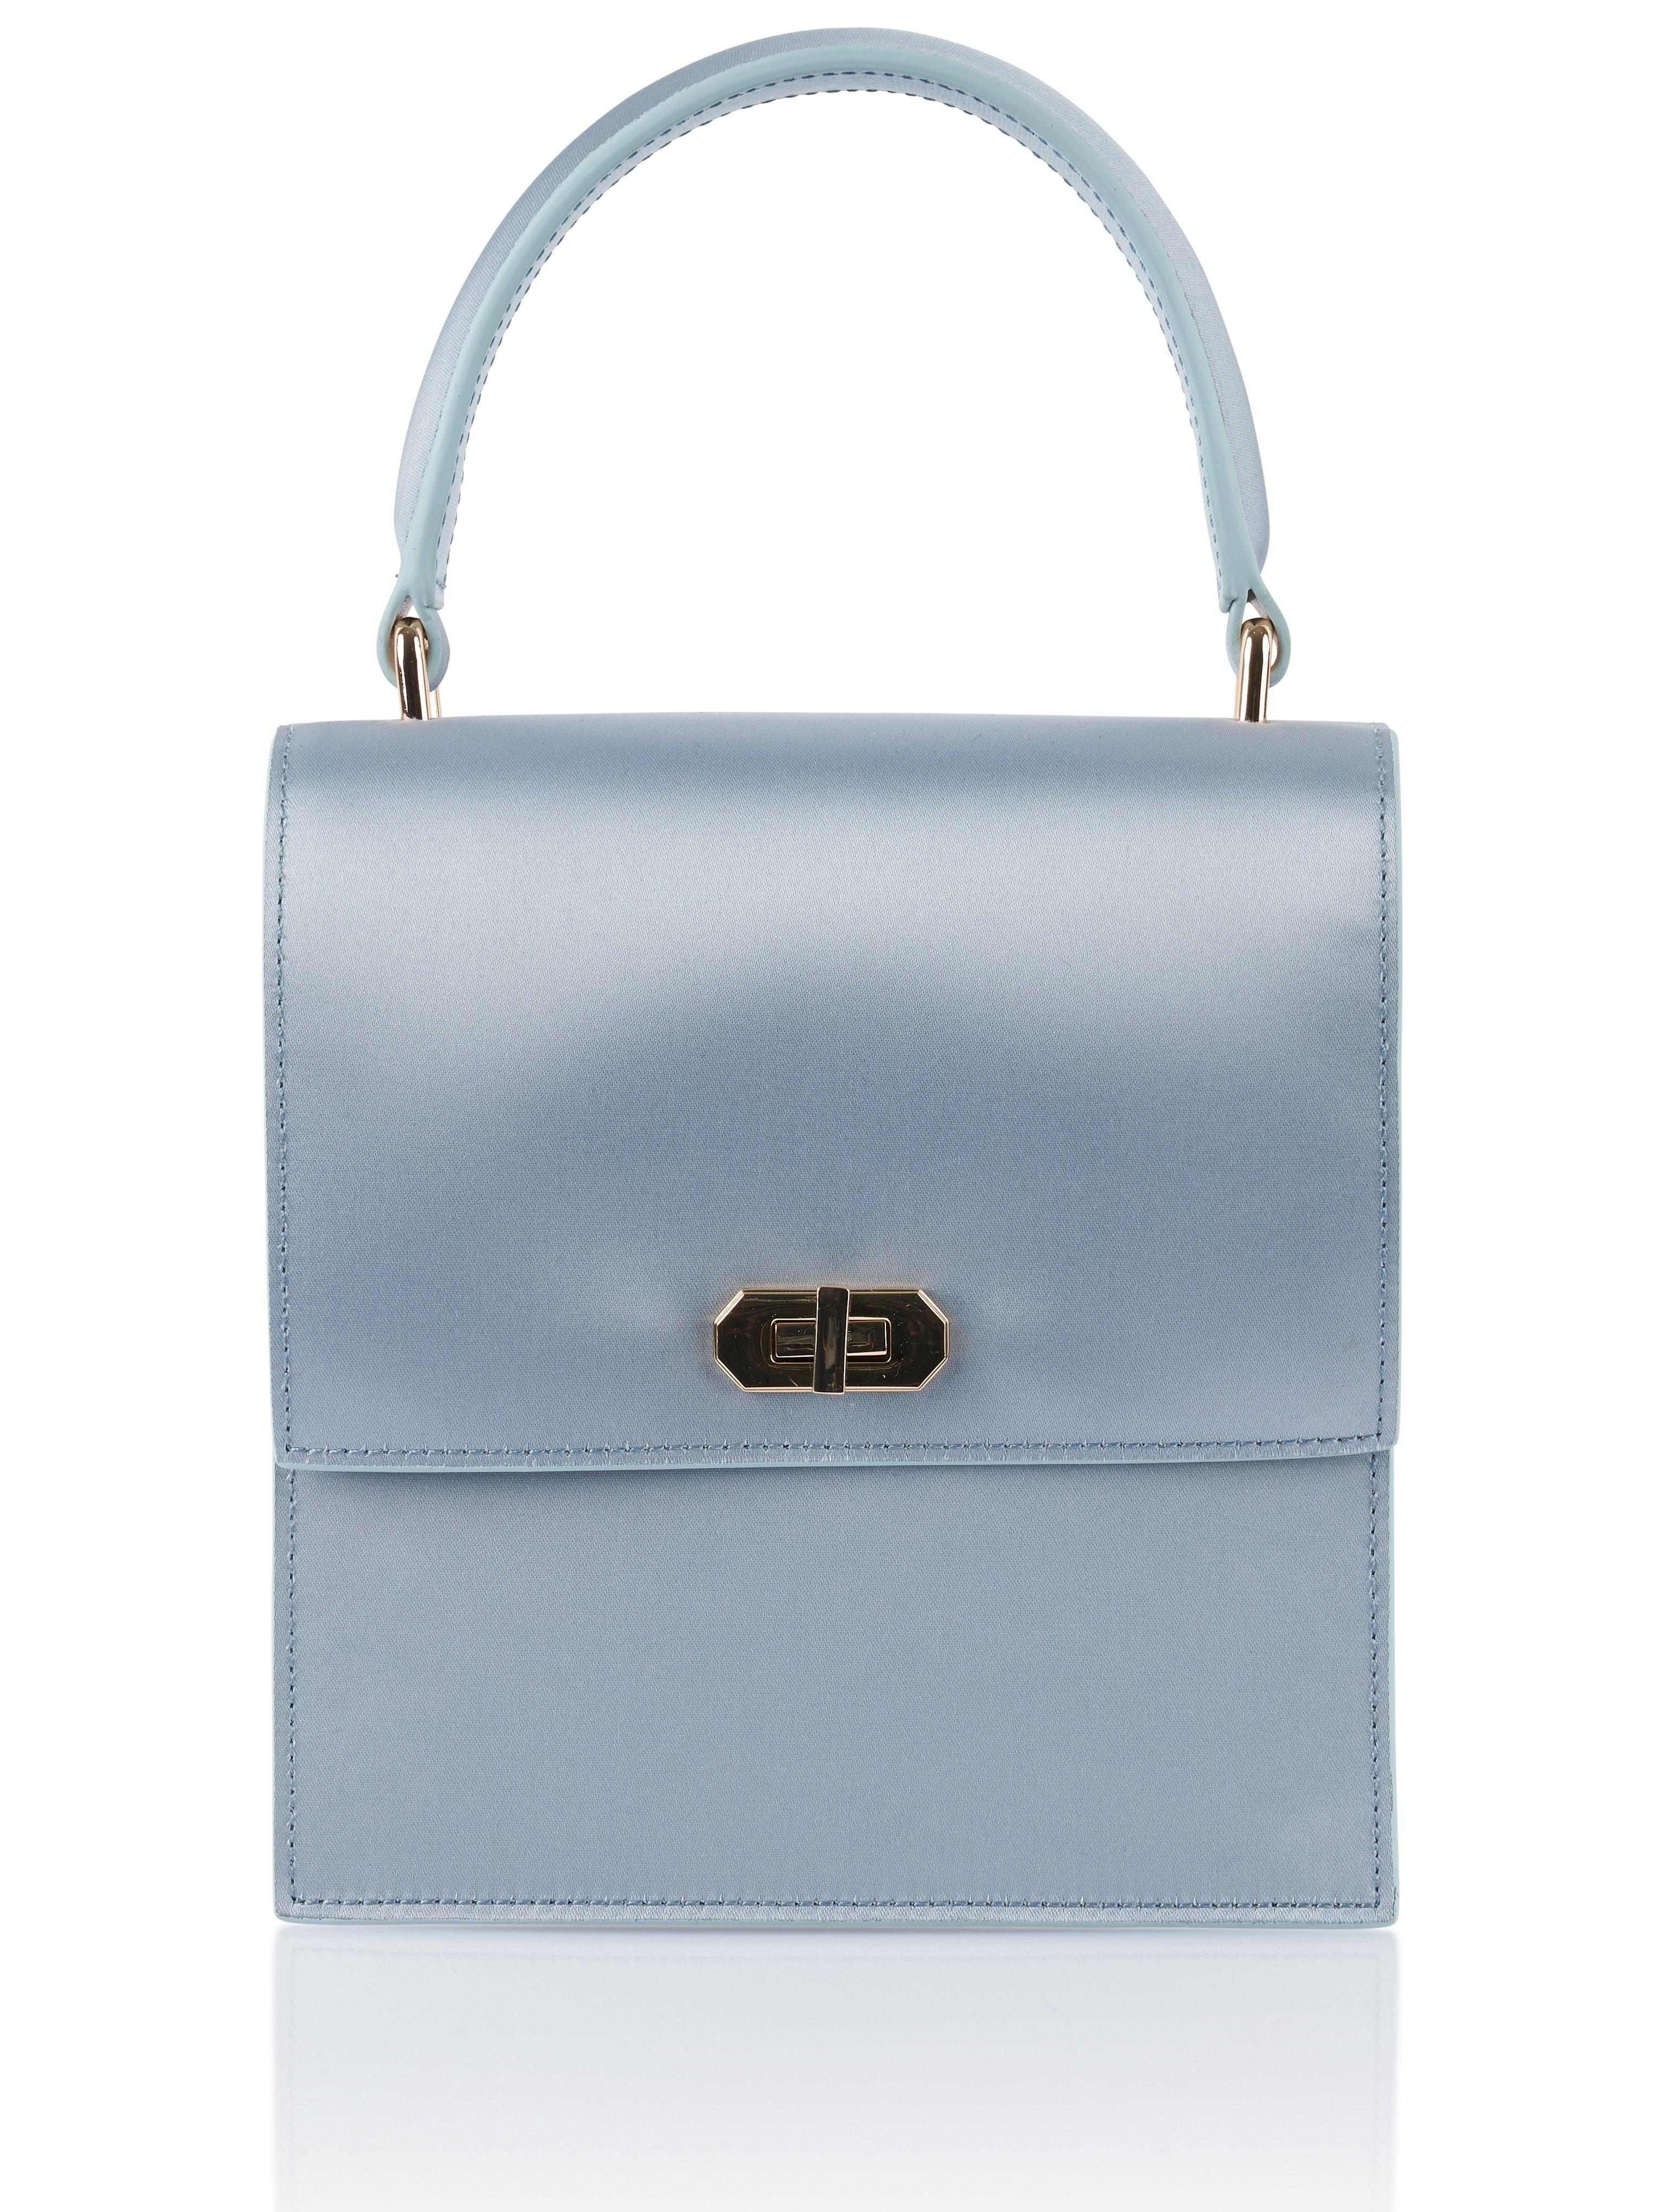 df59c3e668132 NEELY & CHLOE. Women's Mini Blue Satin Lady Bag. $298 From Orchard Mile